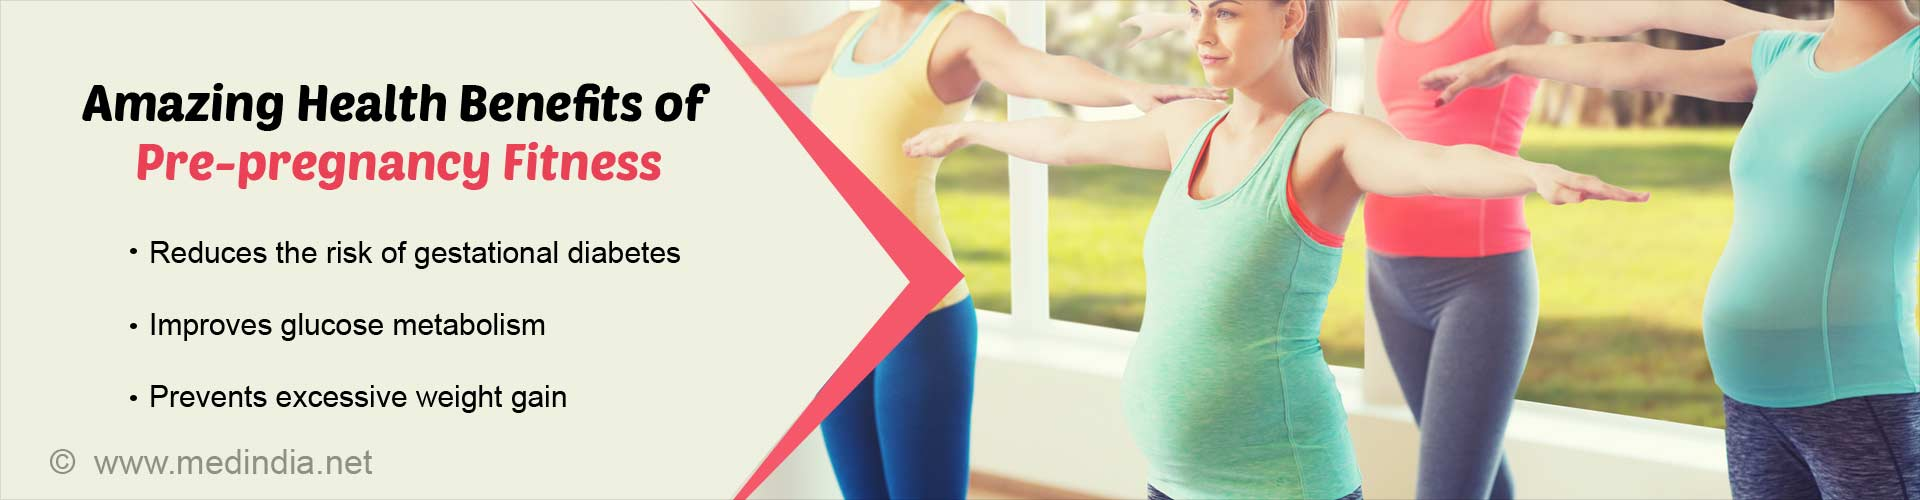 Amazing health benefits of pre-pregnancy fitness - reduces the risk of gestational diabetes - improves glucose metabolism - prevents excessive weight gain